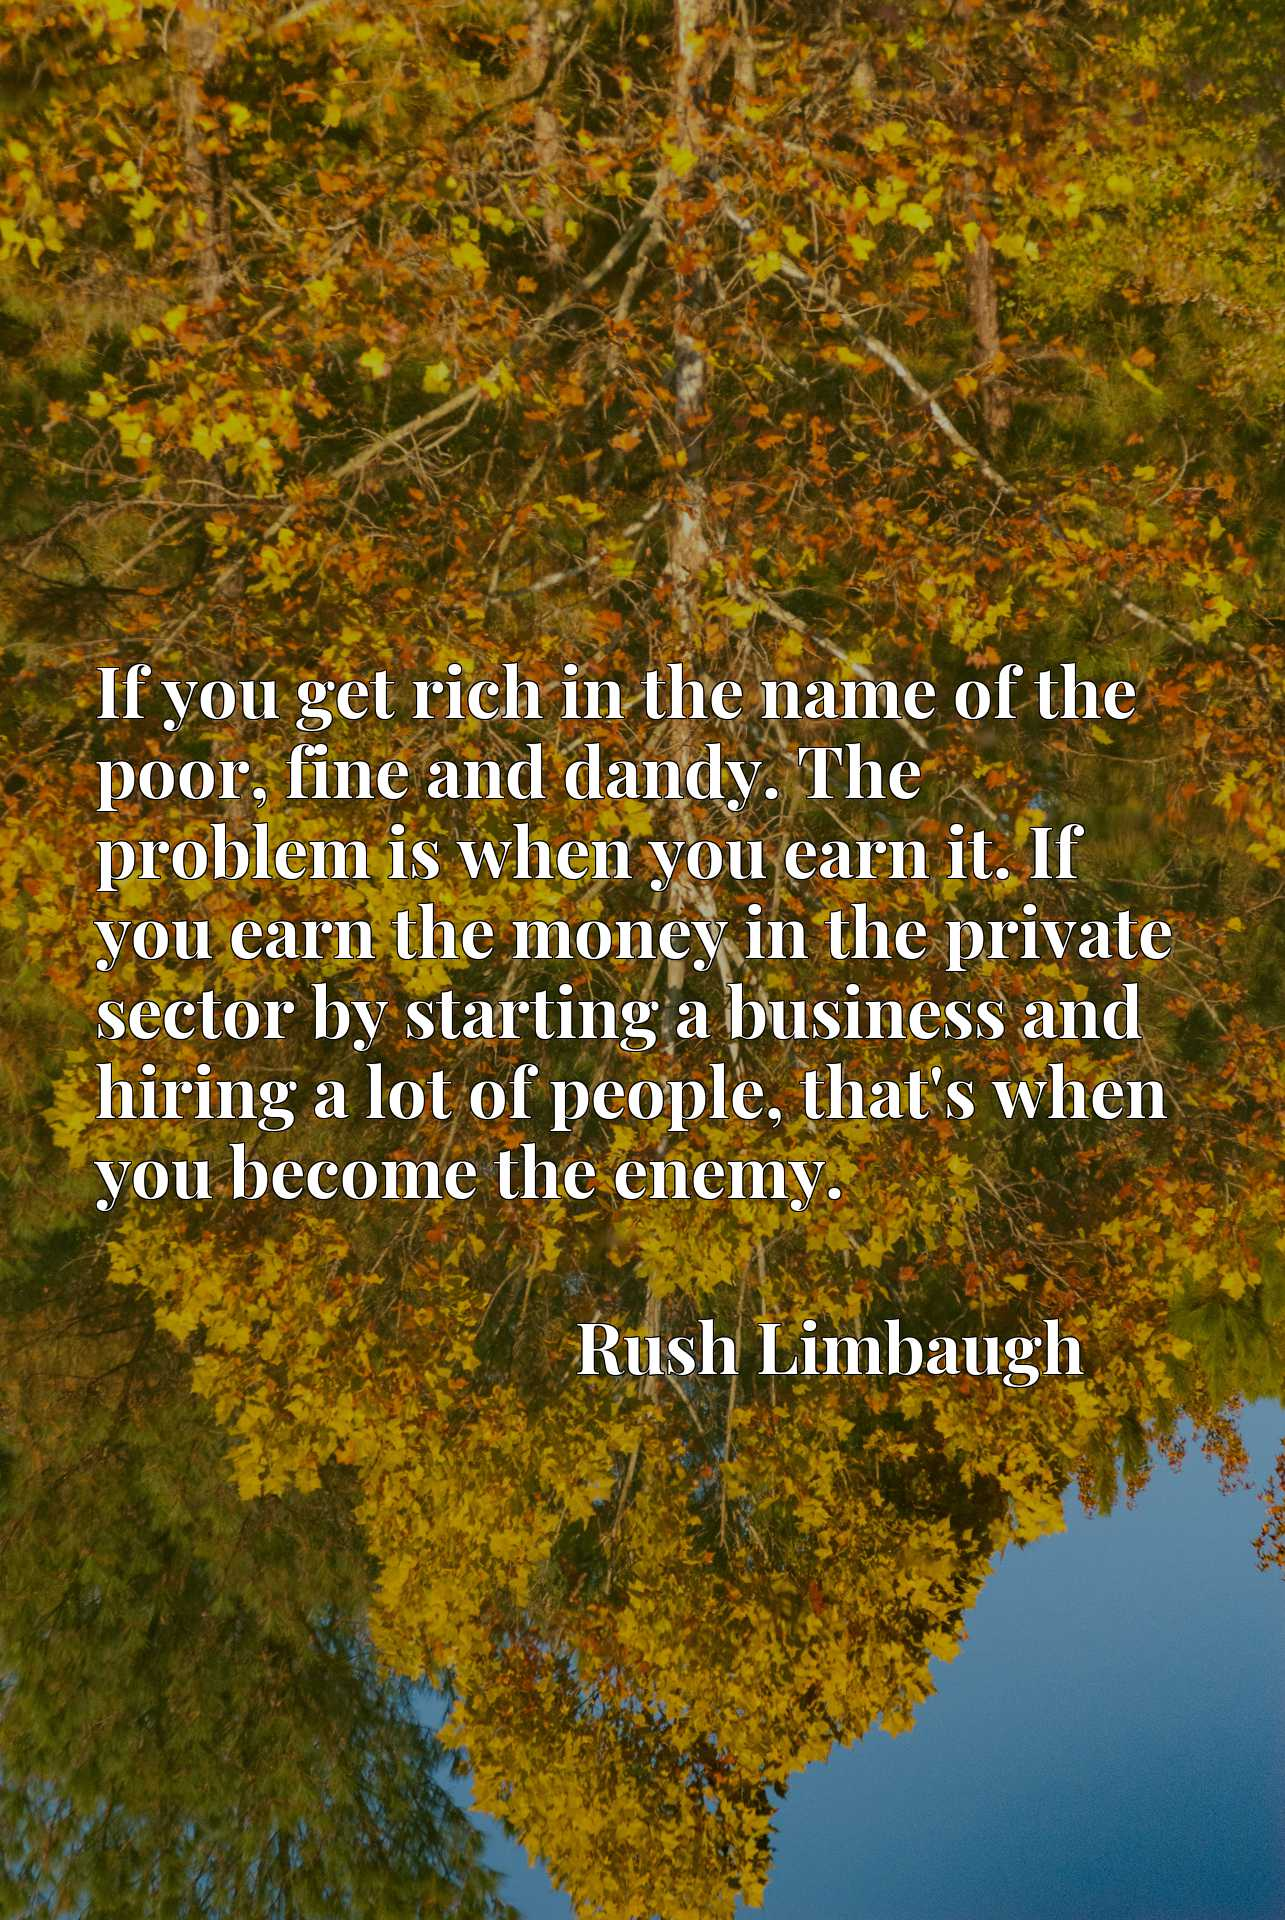 If you get rich in the name of the poor, fine and dandy. The problem is when you earn it. If you earn the money in the private sector by starting a business and hiring a lot of people, that's when you become the enemy.